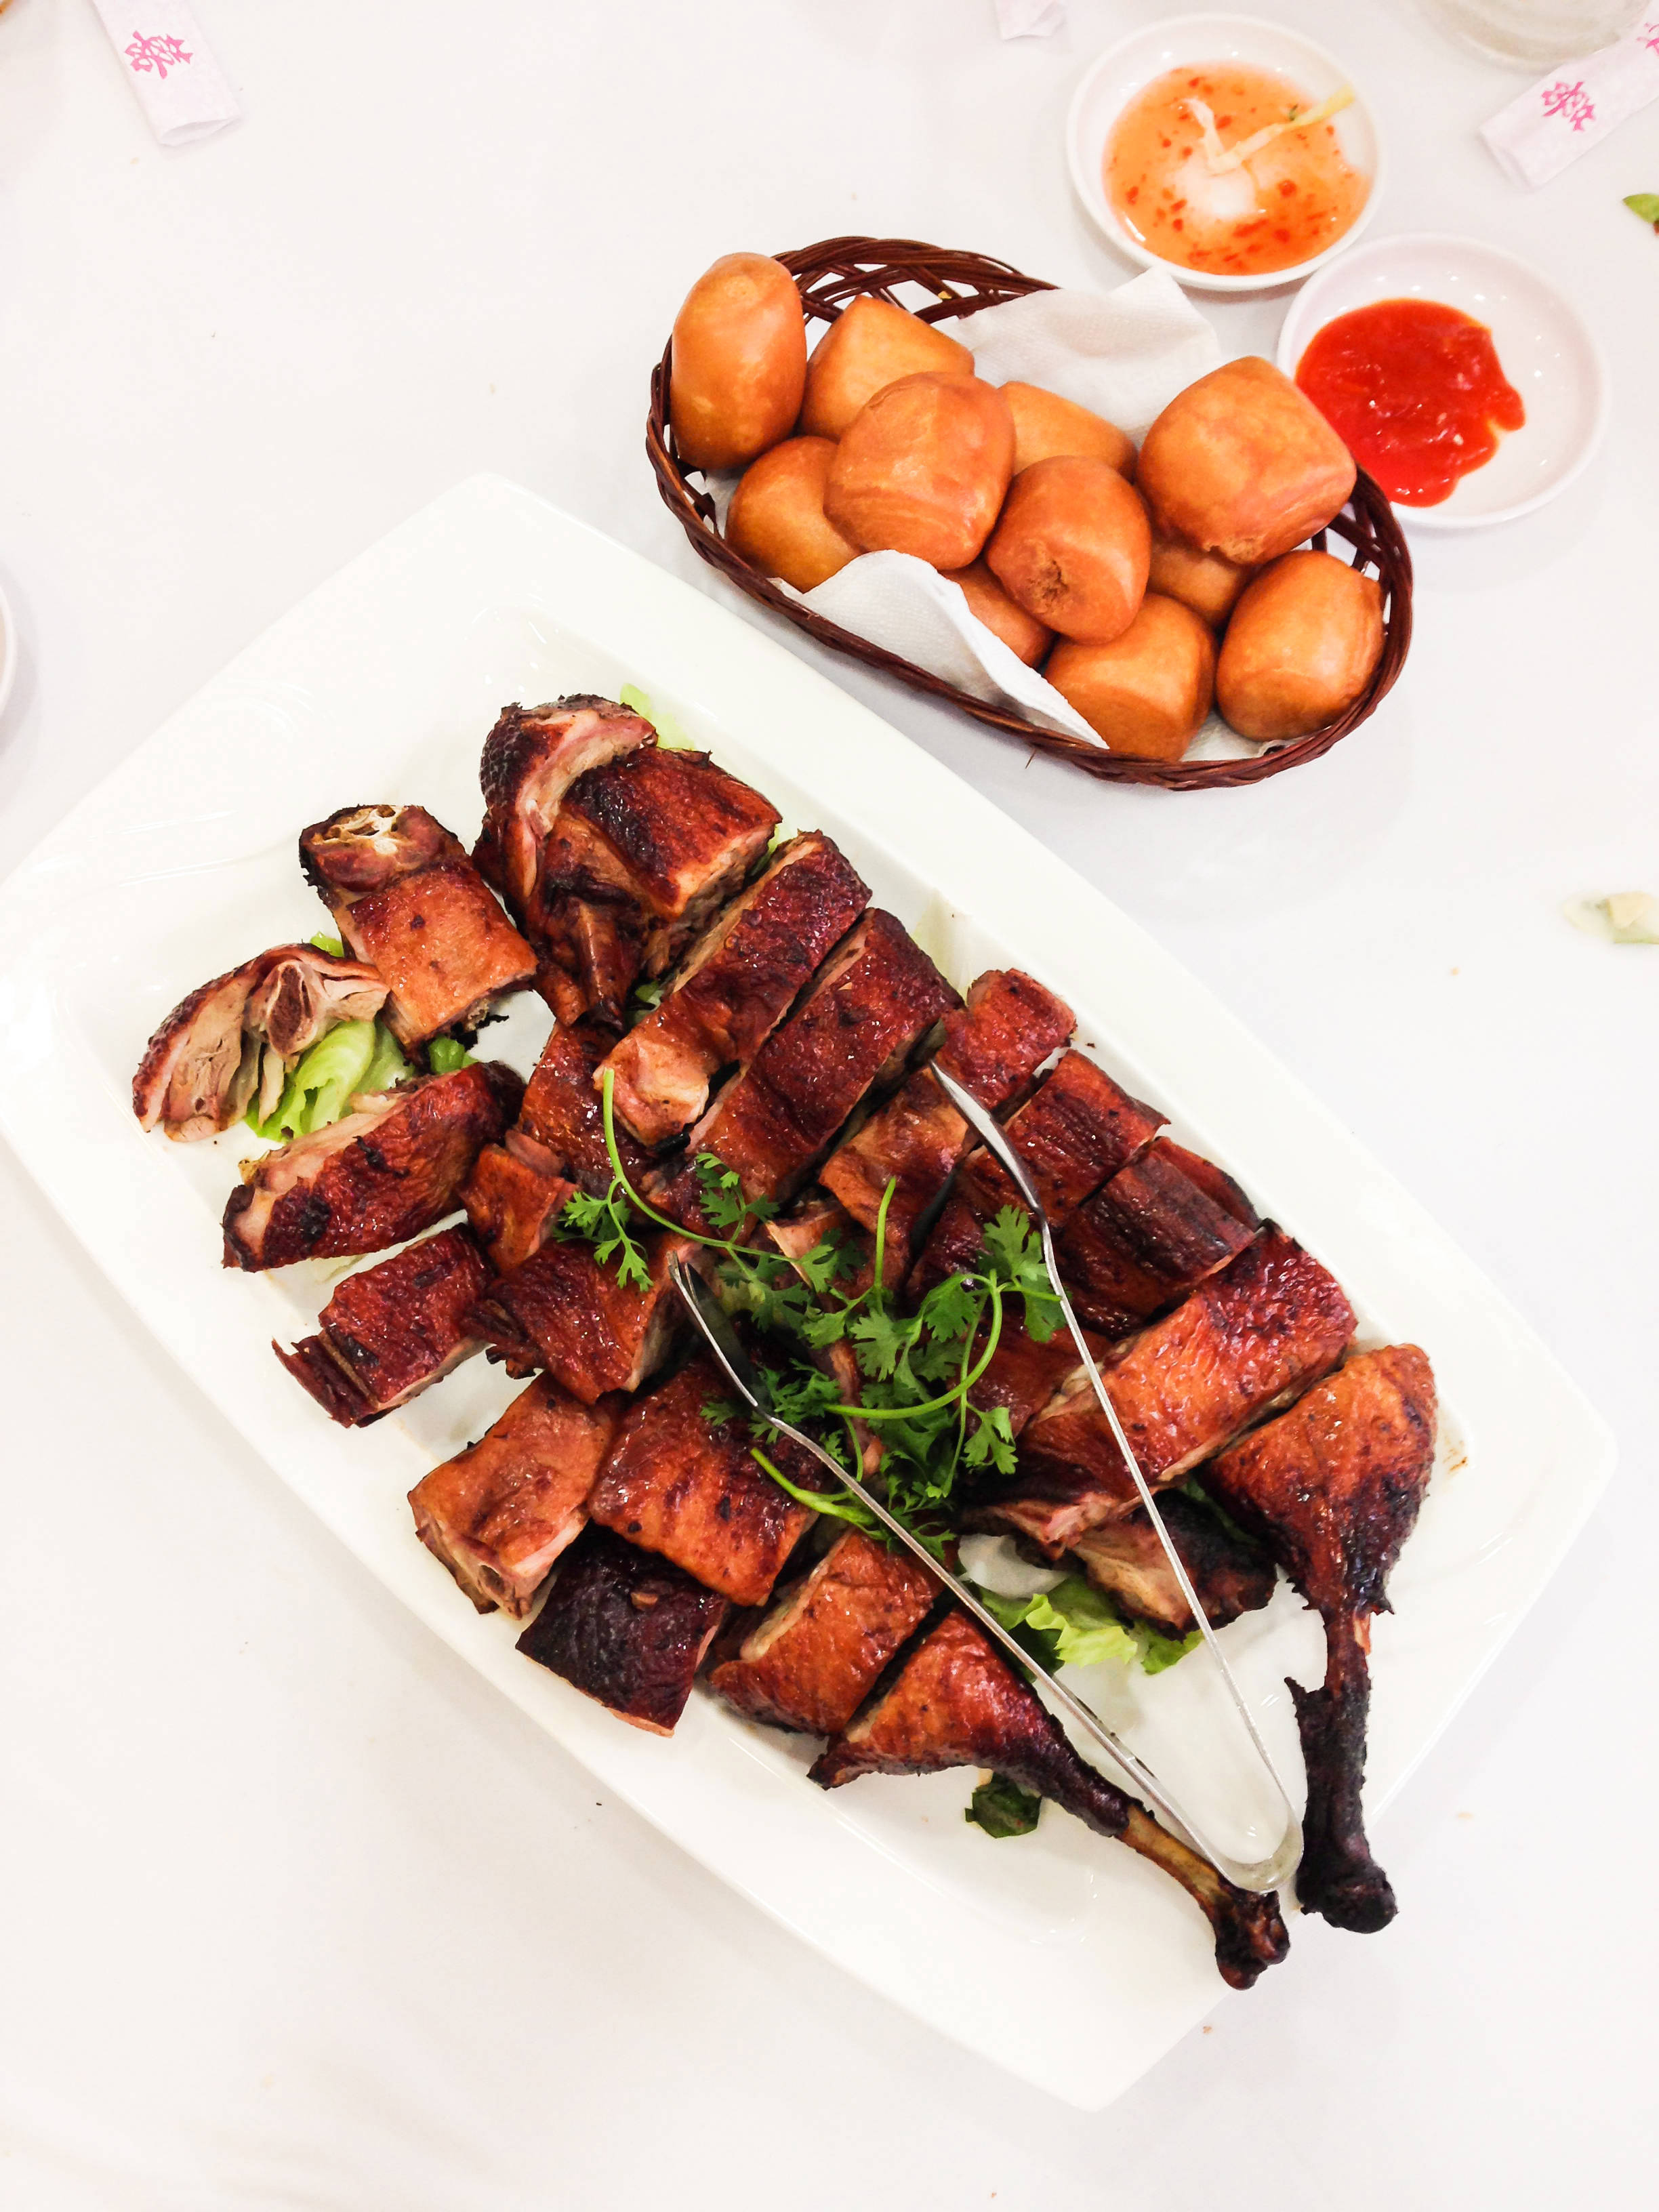 Roasted duck with honey and buns